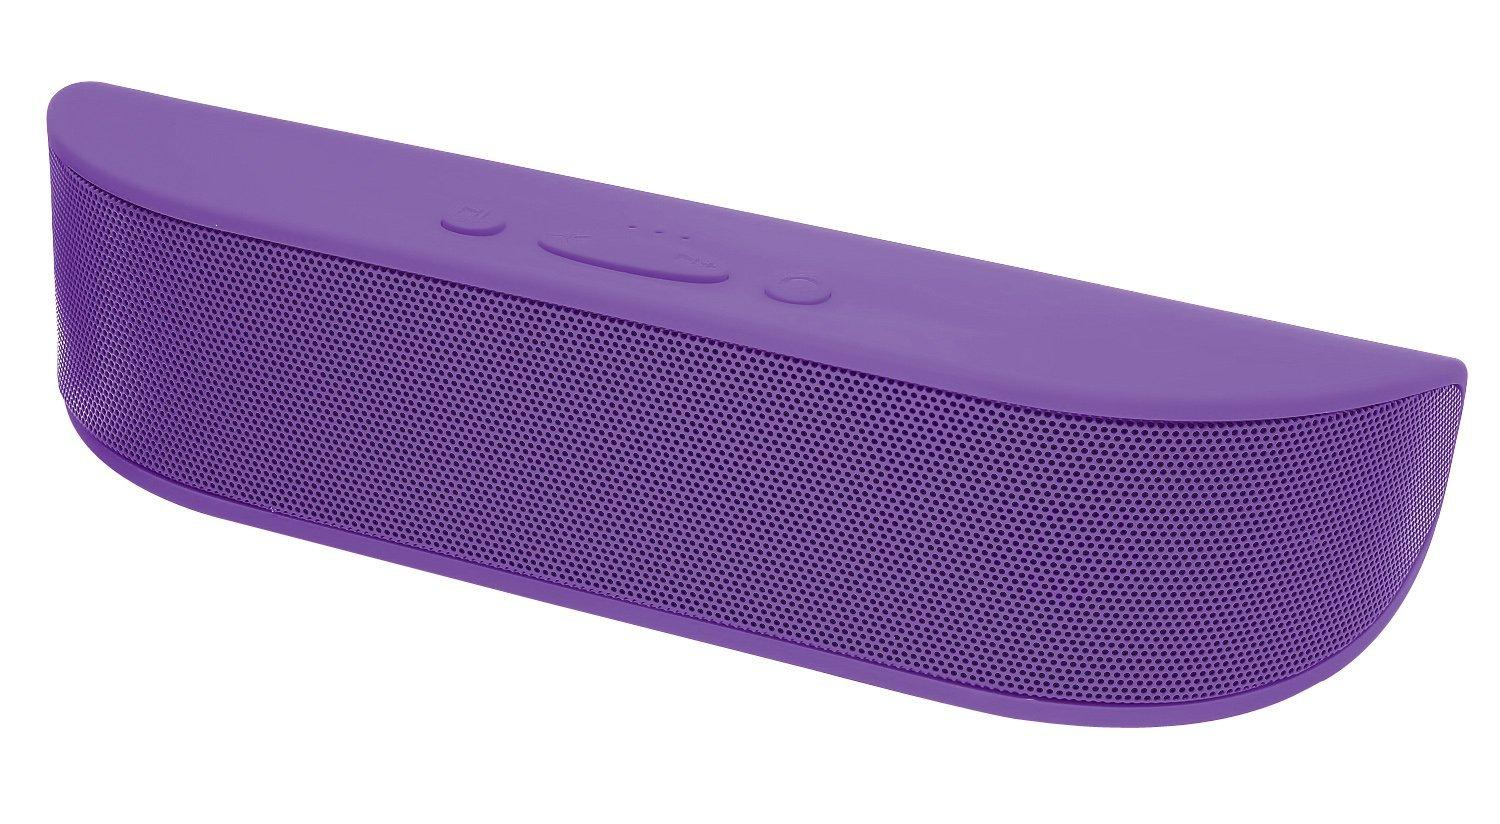 Aduro BeeBop Portable Wireless 10W Bluetooth Speaker with Built-in Speakerphone (Purple)